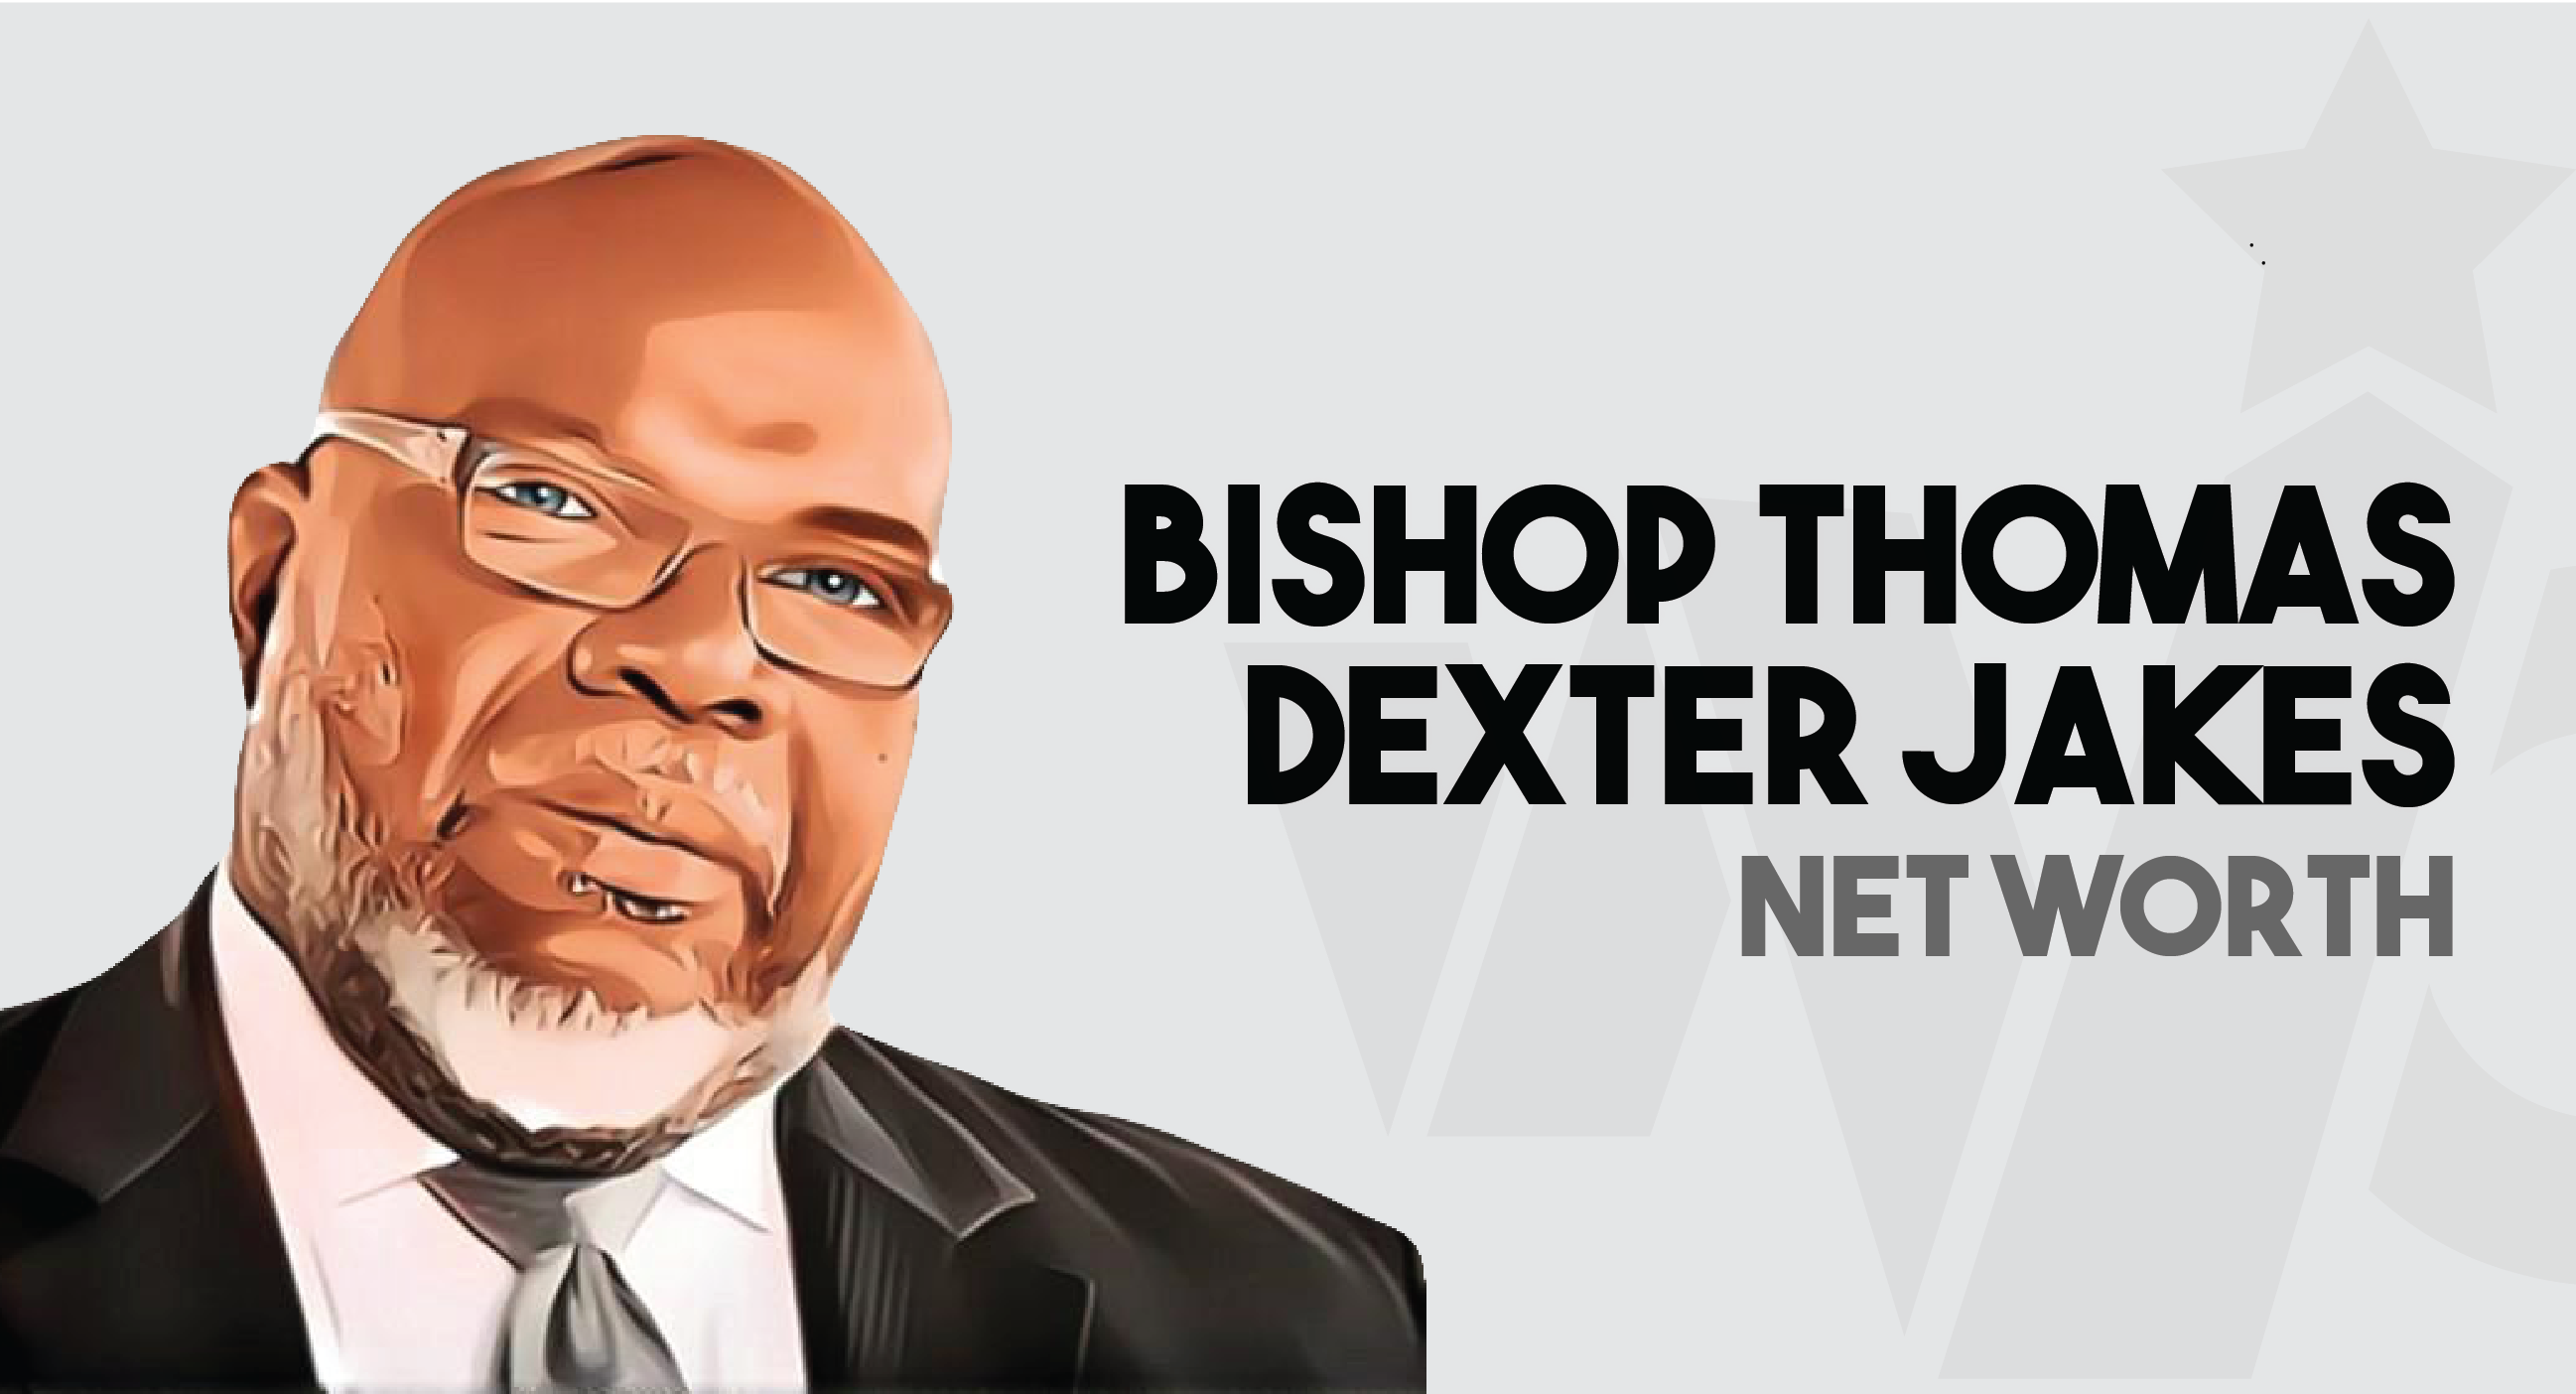 Bishop Thomas Dexter Jakes - Net Worth